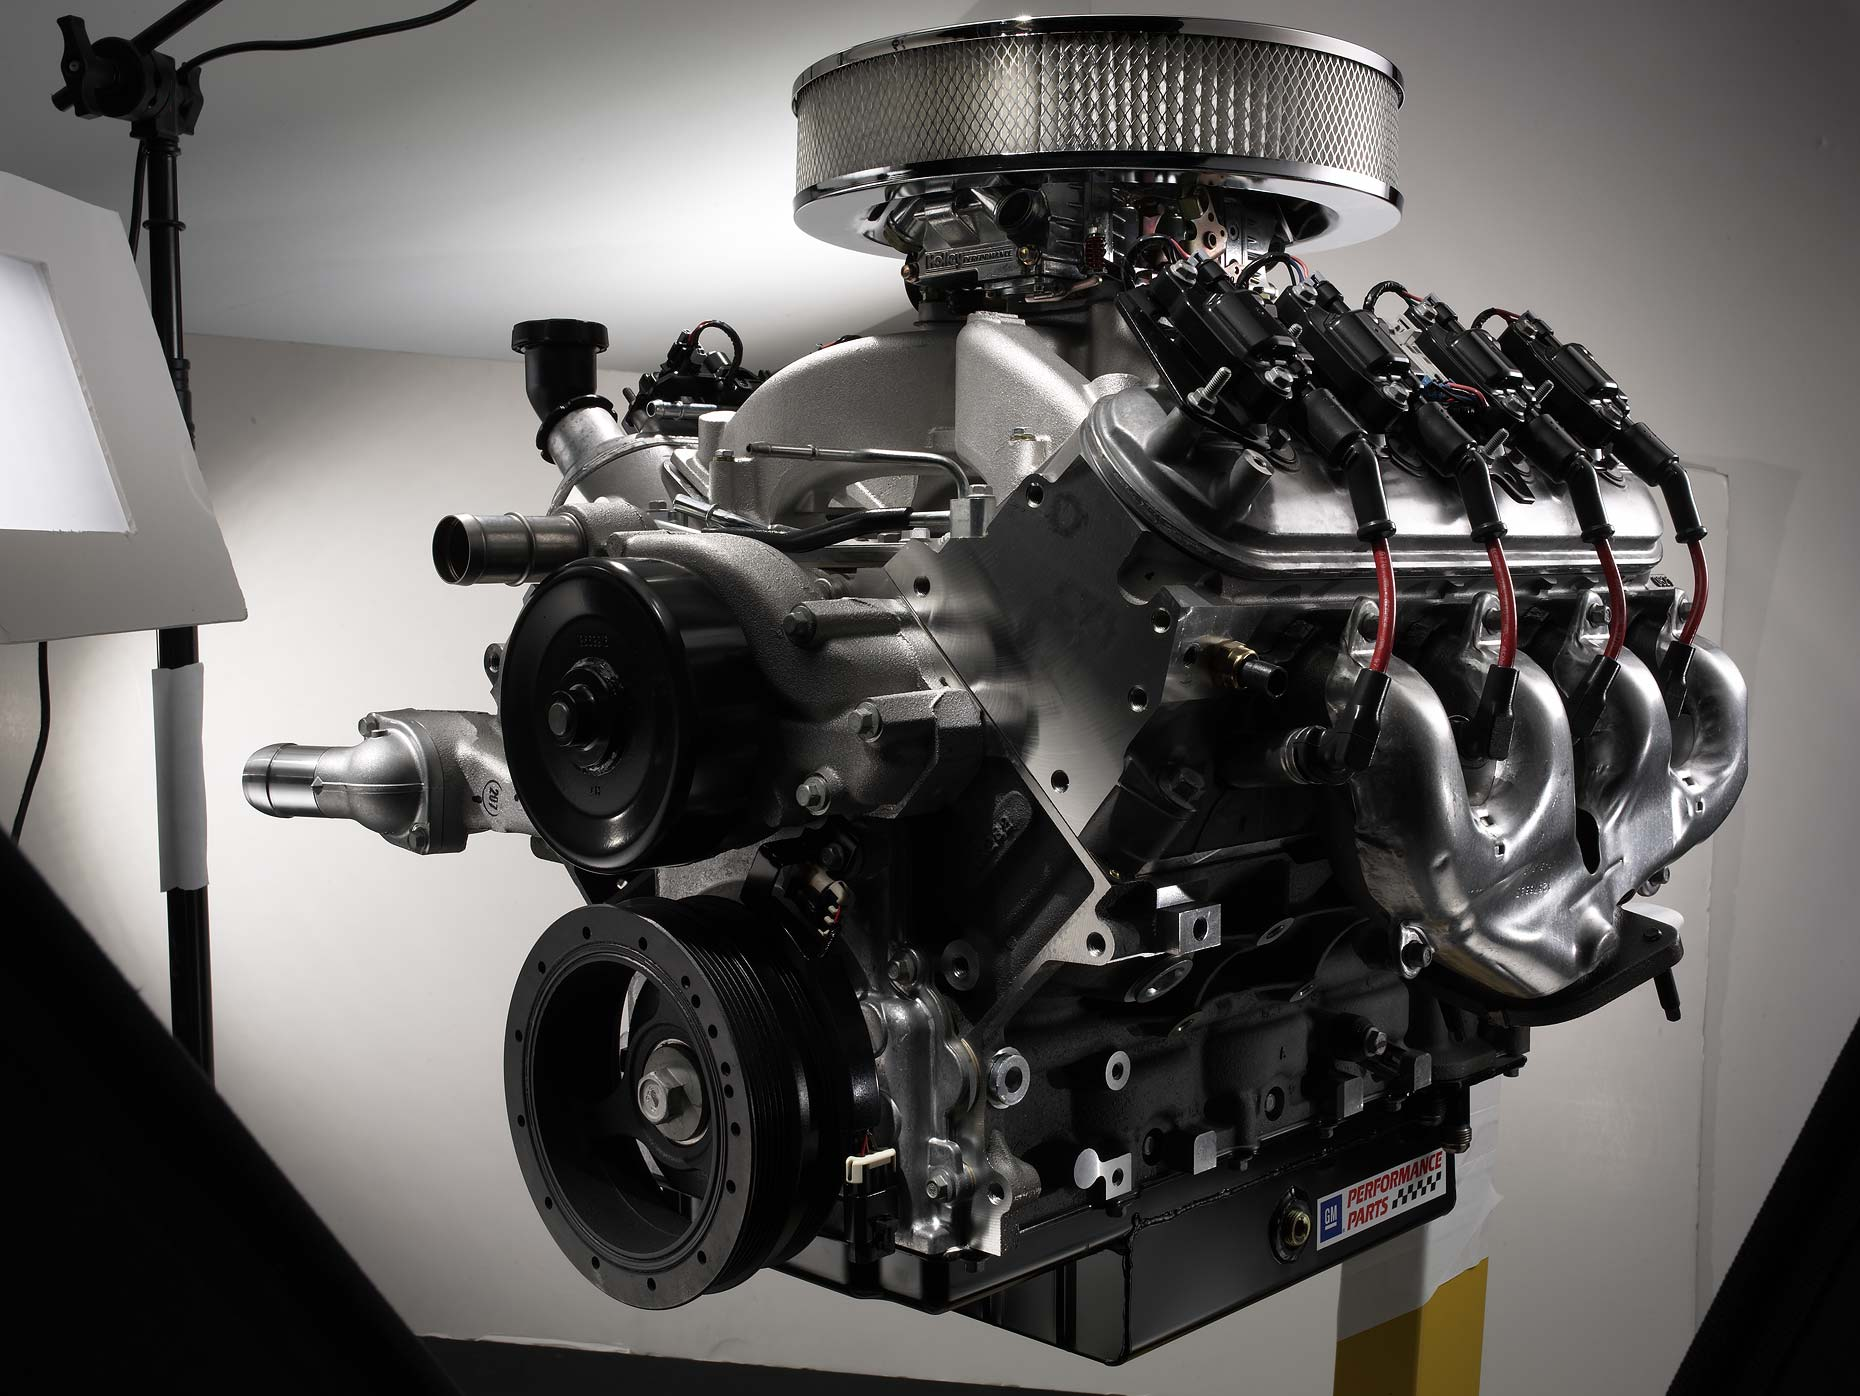 chevrolet crate engine_gm parts-behind the scenes.jpg